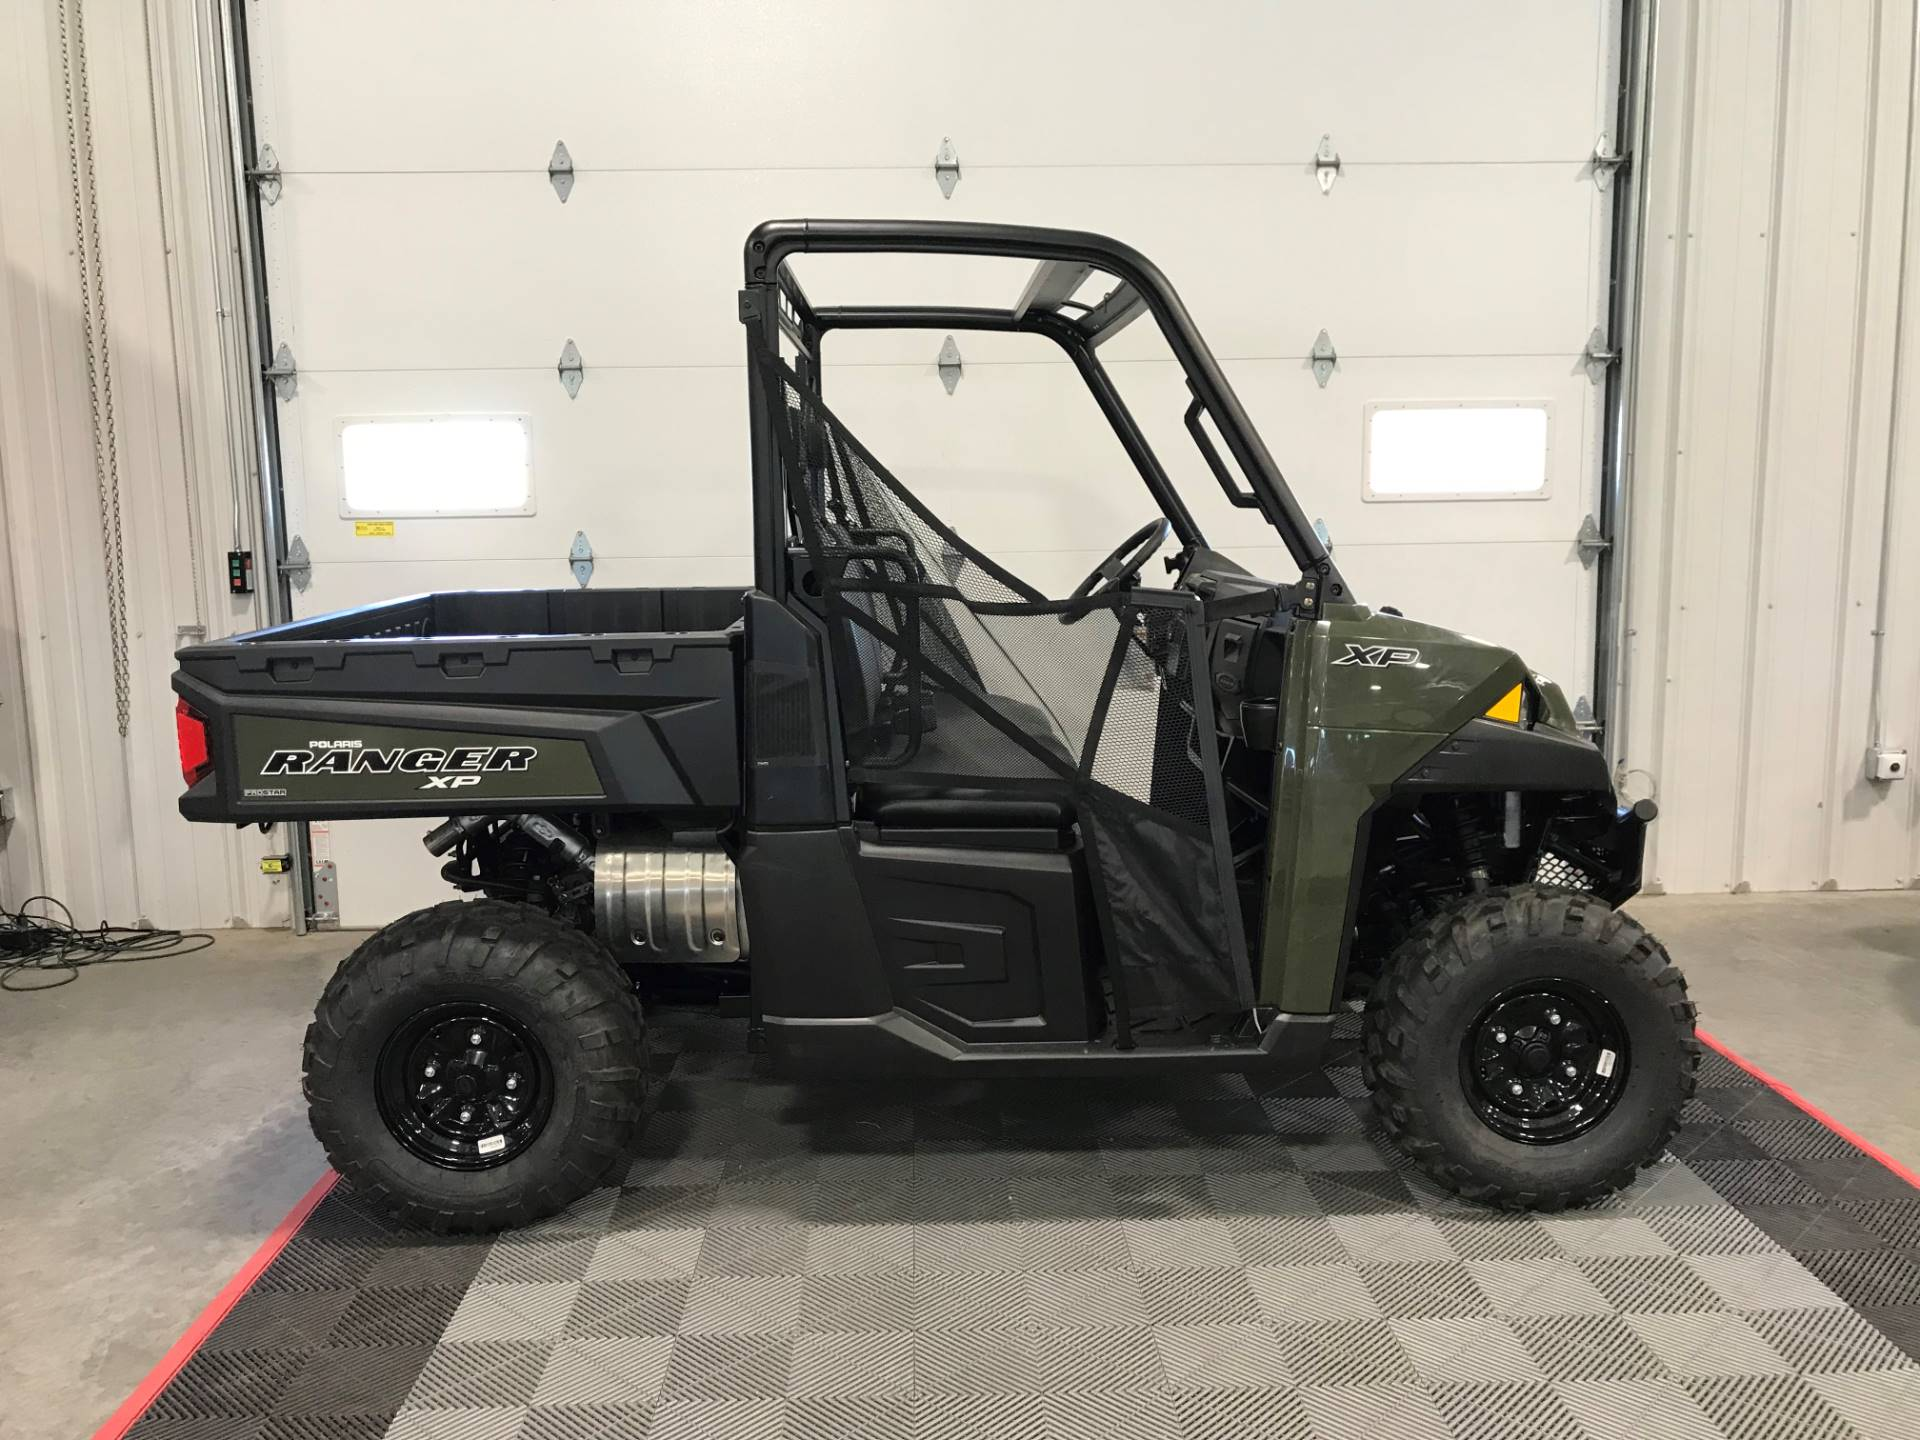 2019 Polaris Ranger XP 900 in Ames, Iowa - Photo 1